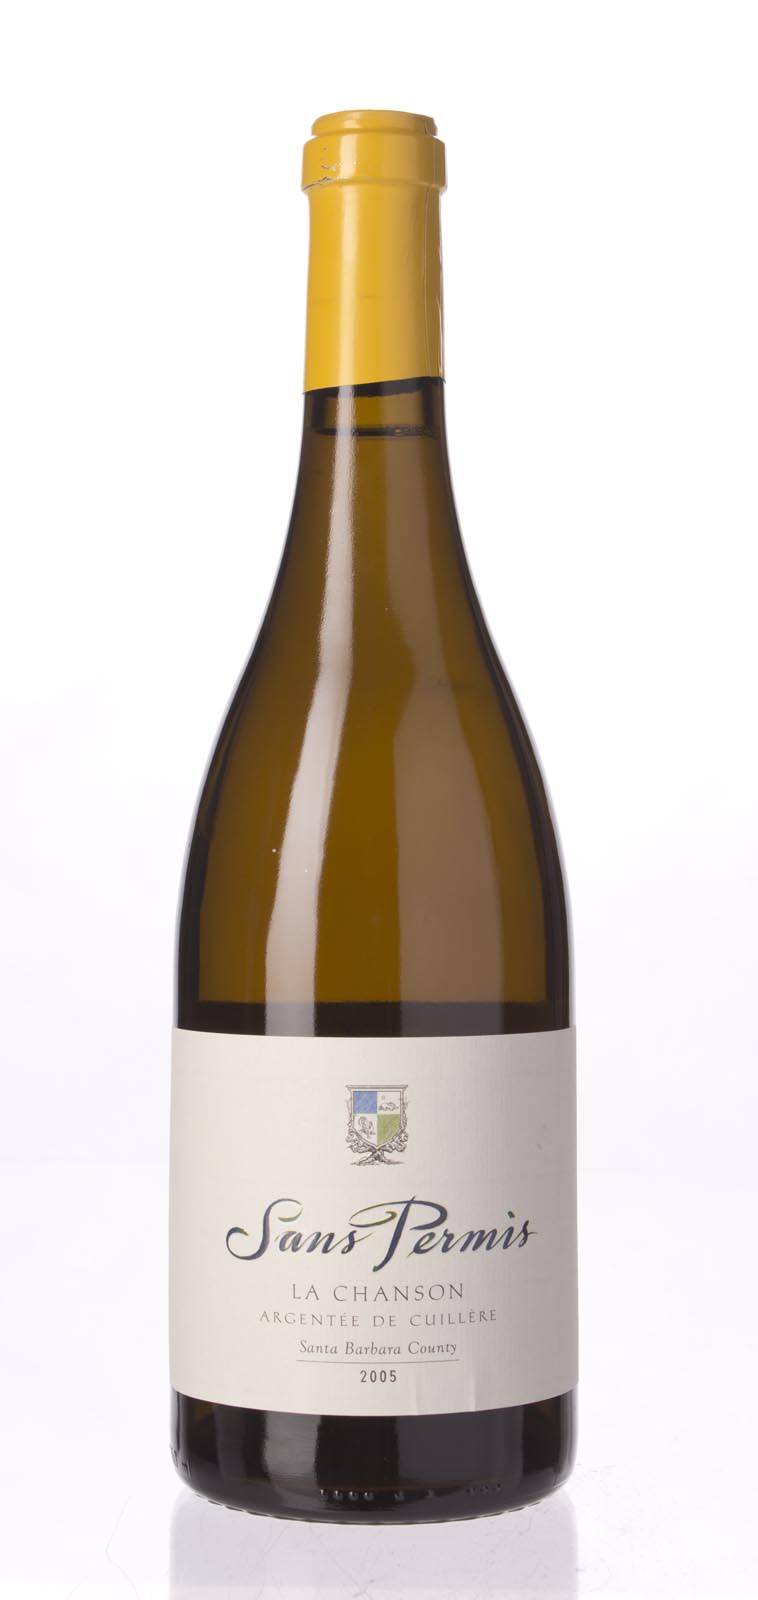 Sans Permis Chardonnay la Chanson Argentee de Cuillere 2005, 750ml () from The BPW - Merchants of rare and fine wines.